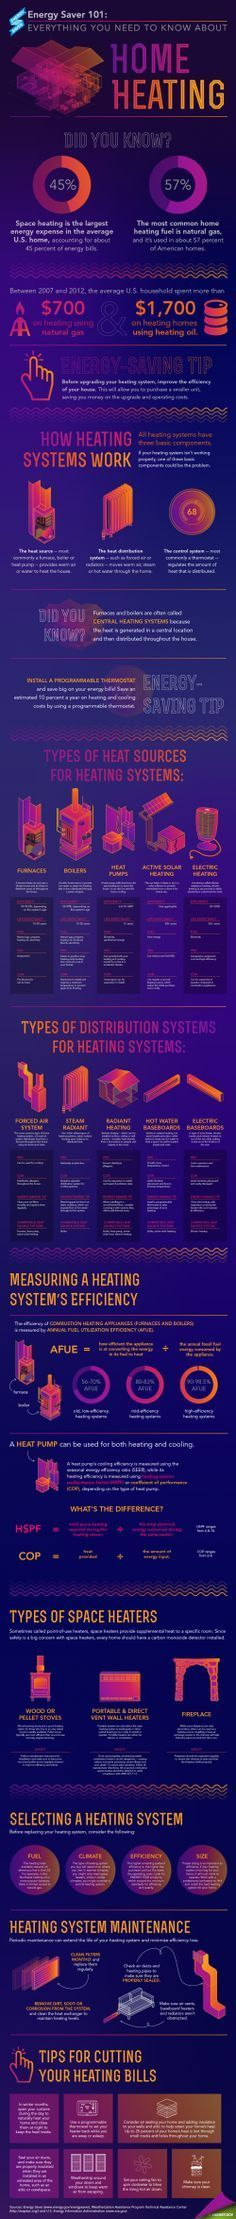 Our new Energy Saver 101 infographic lays out everything you need to know about home heating -- from how heating systems work and the different types on the market to what to look for when replacing your system and proper maintenance. Not to mention, it shares tips of lowering your heating bills.